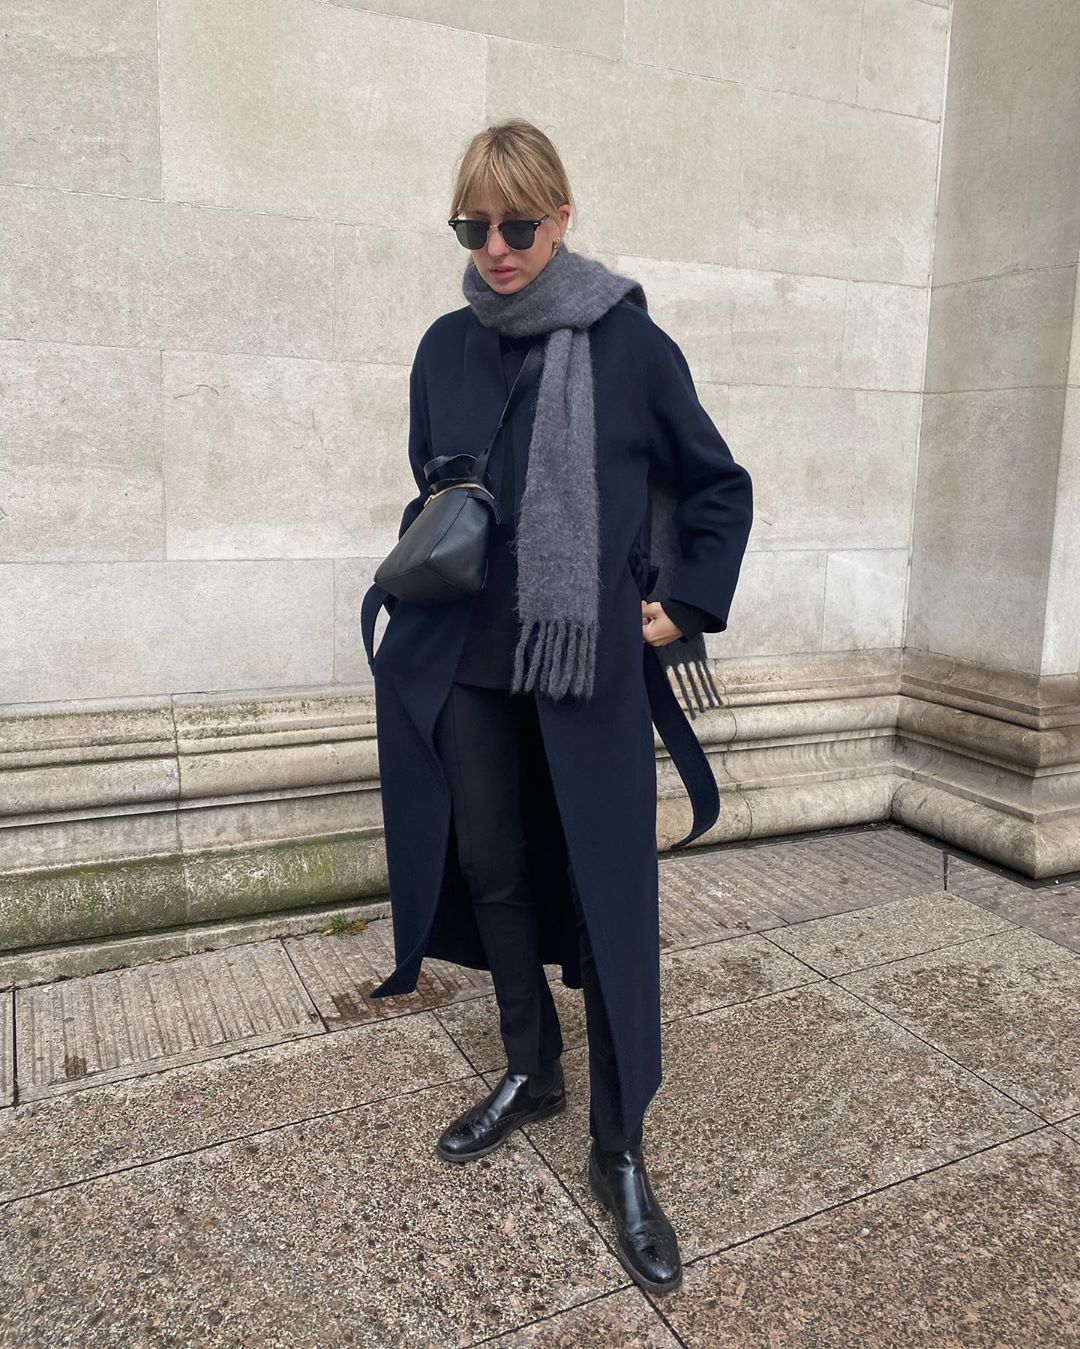 20 Stylish Fall/Winter Coats to Shop Now